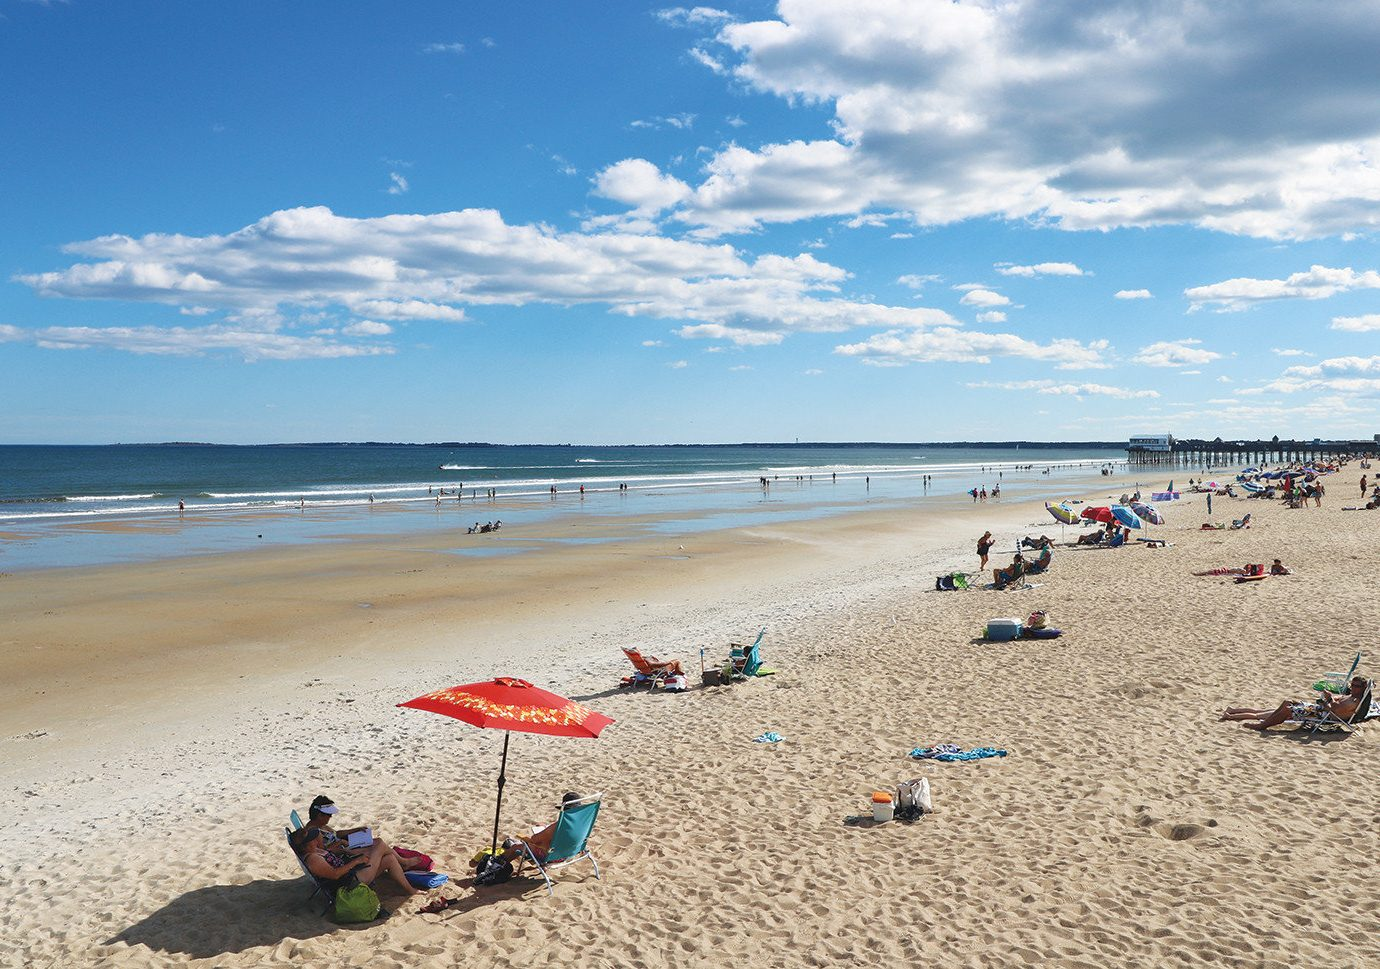 Secret Getaways Trip Ideas sky outdoor Beach ground water shore Nature body of water Sea sand Coast Ocean horizon vacation people wind wave bay material day sandy several